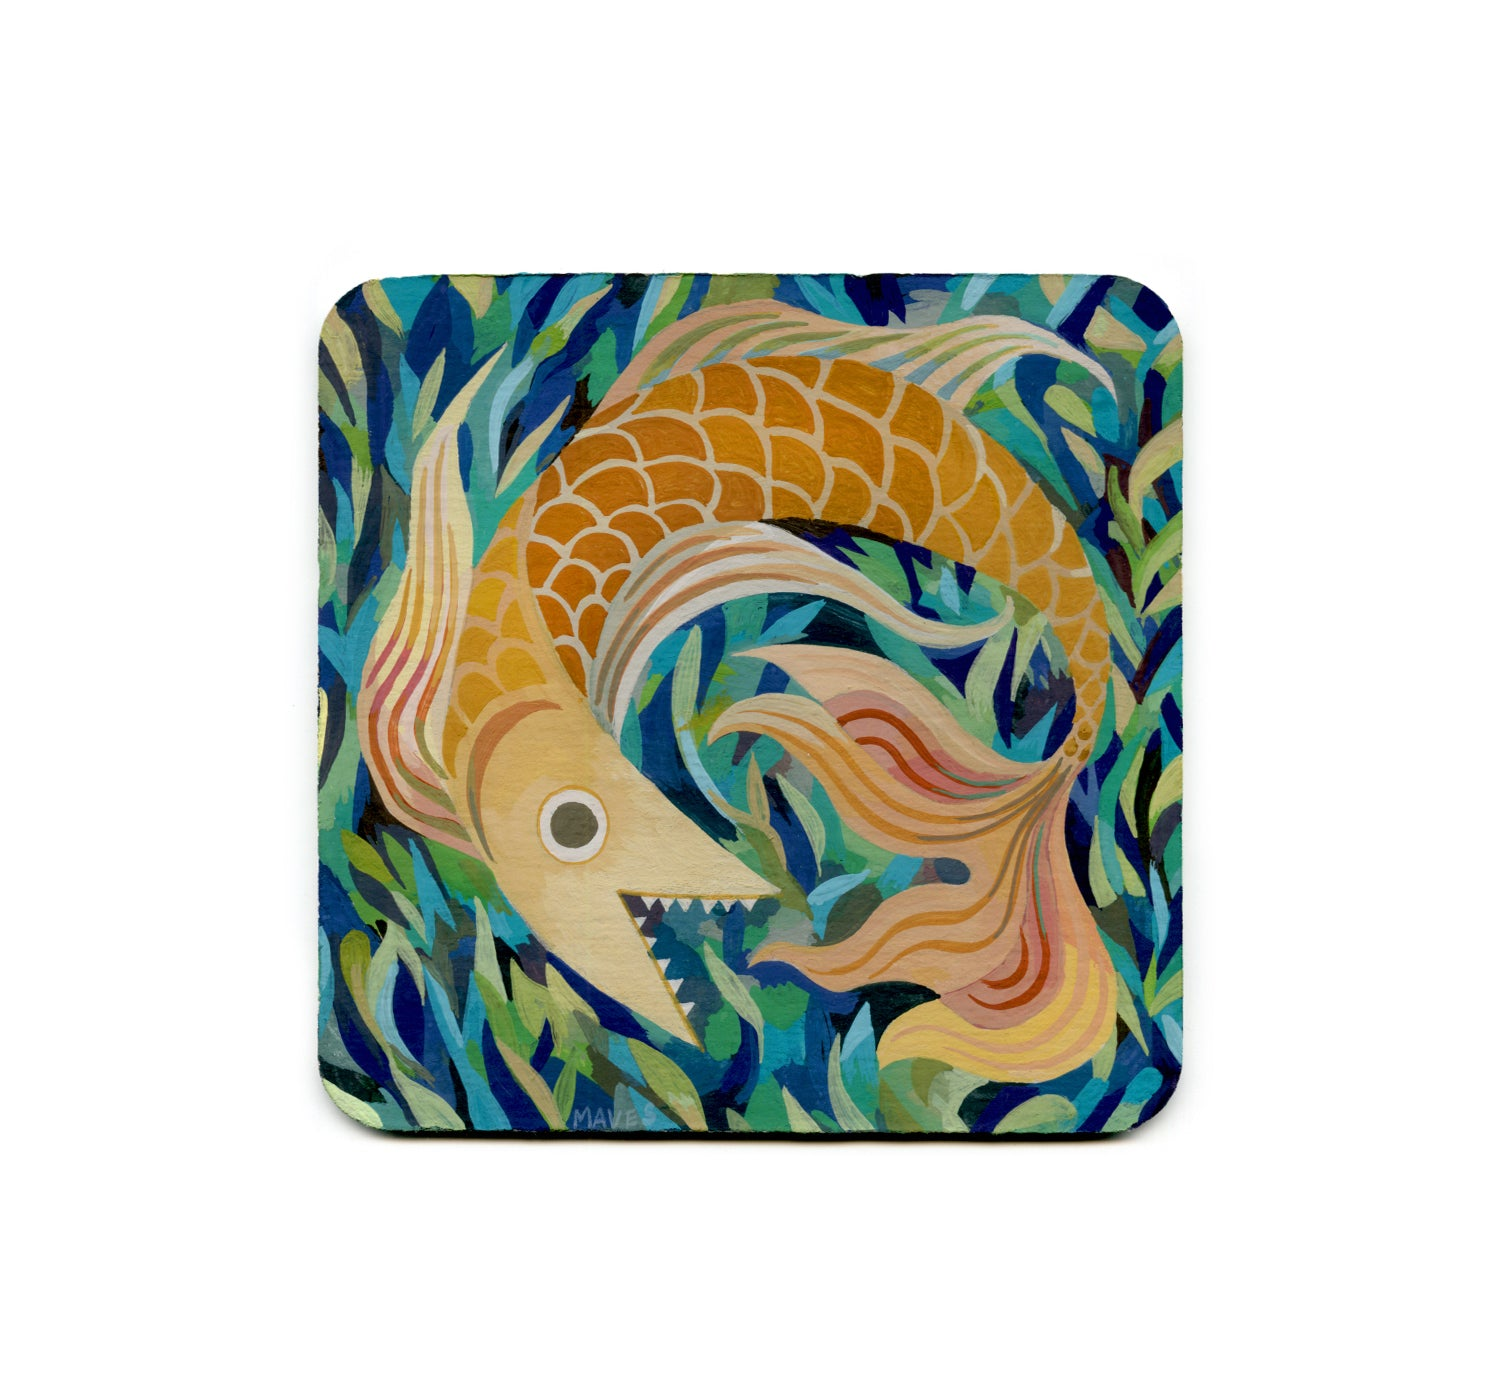 Rachel Maves - The Lauging Fish Coaster